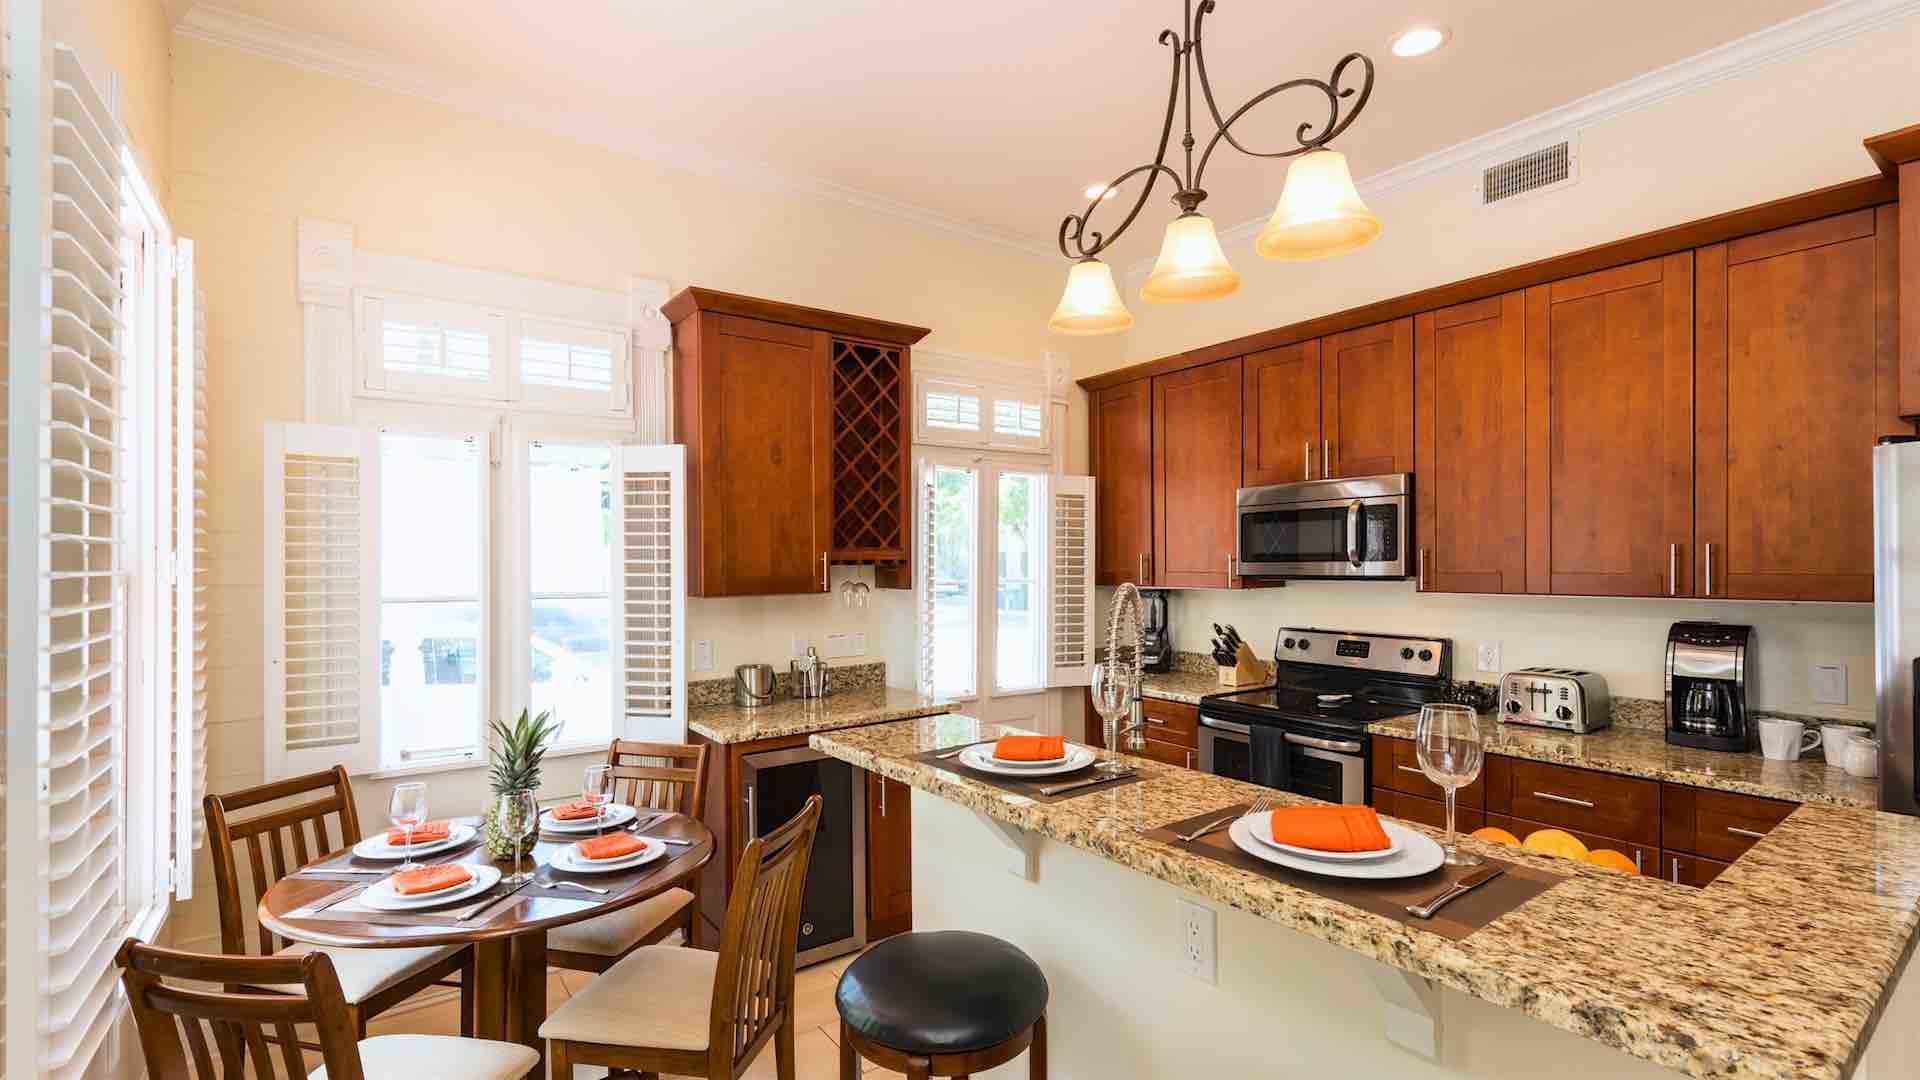 The downstairs condo has an open kitchen and dining area...